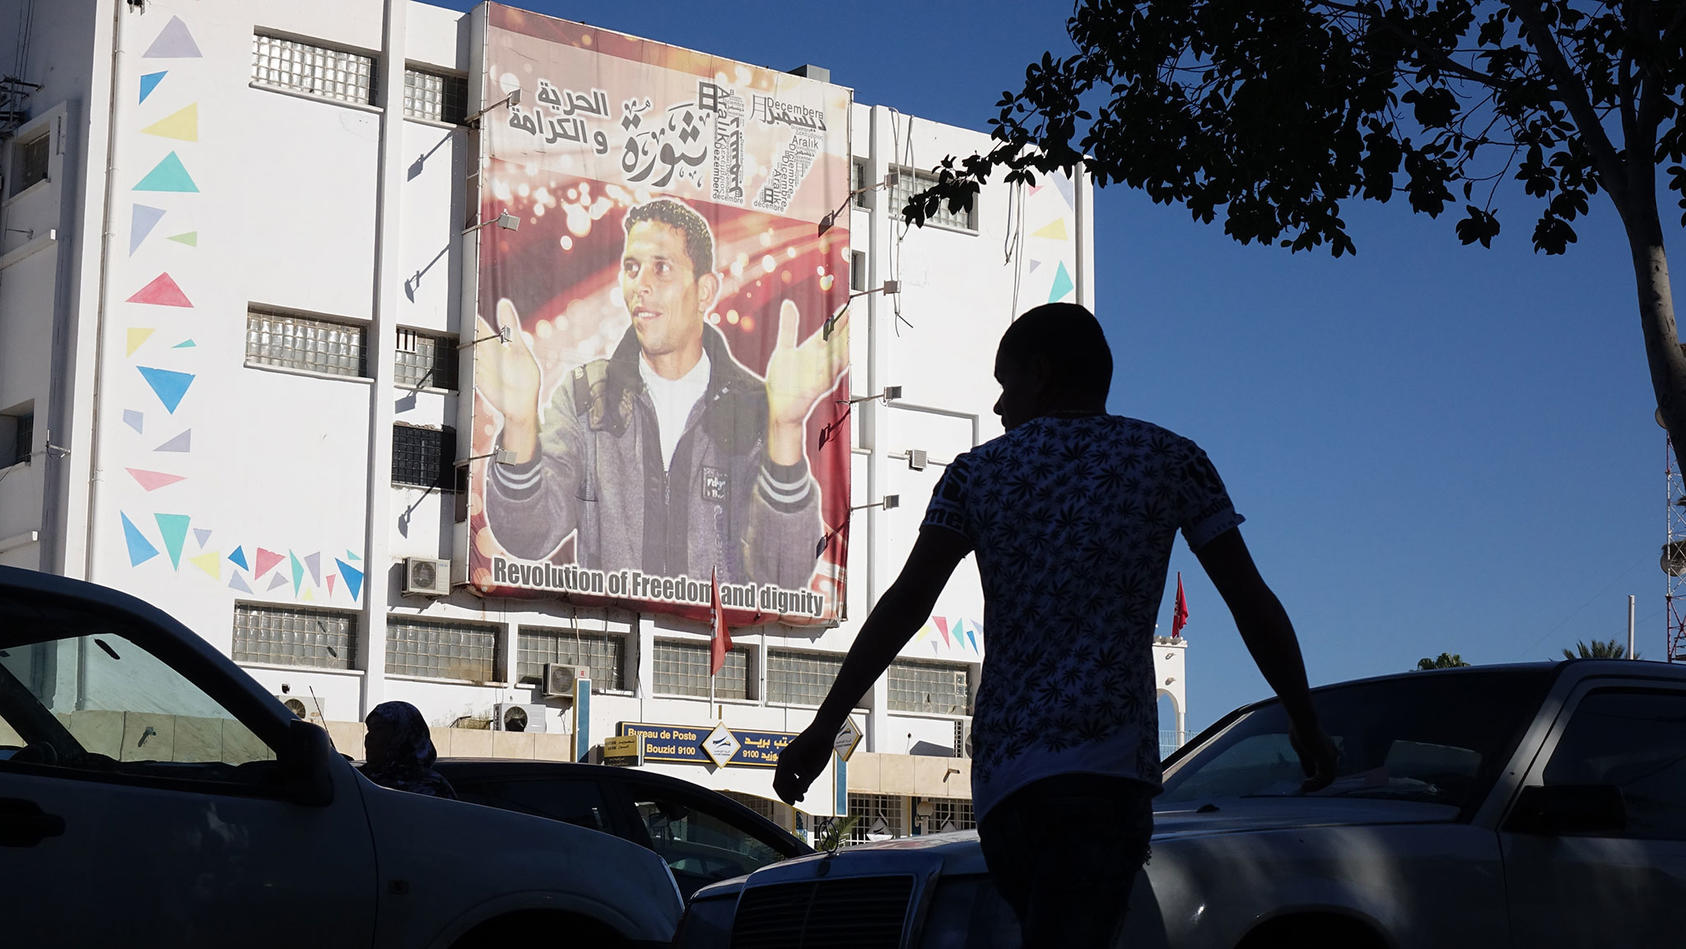 In the Tunisian city of Sidi Bouzid, cars and pedestrians bustle past the post office, with its portrait of street vendor Mohammed Bouazizi, whom Tunisians describe as a martyr to their democracy.